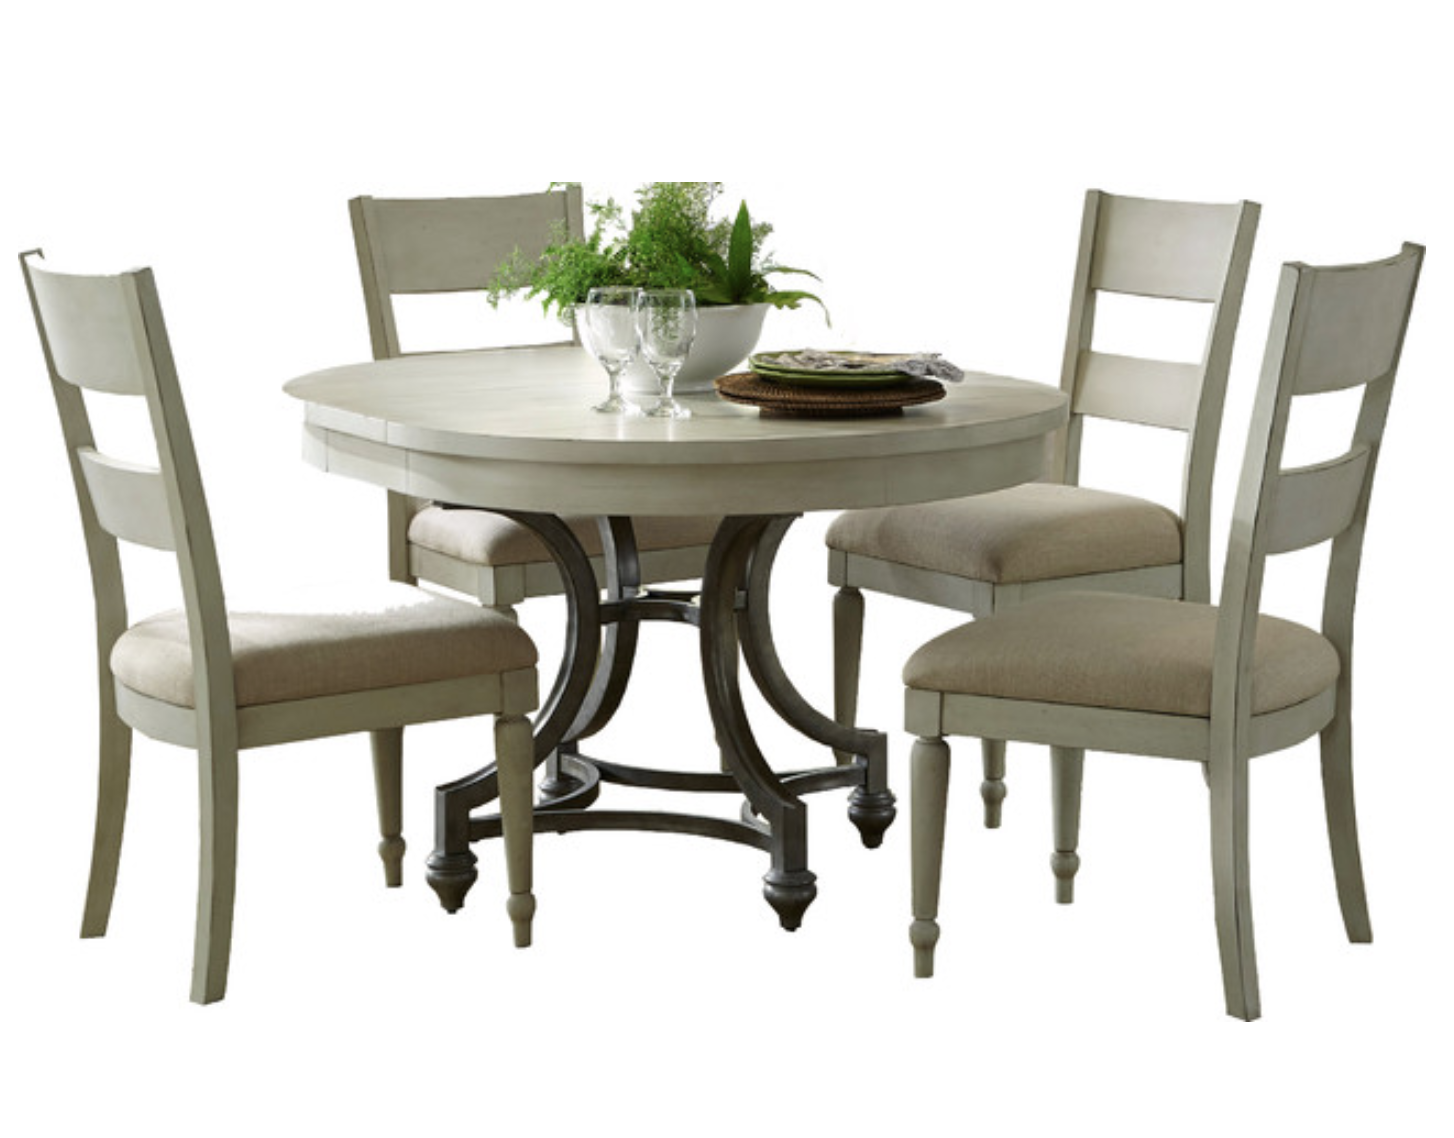 liberty-furniture-harbor-view-iii-round-dining-table-set